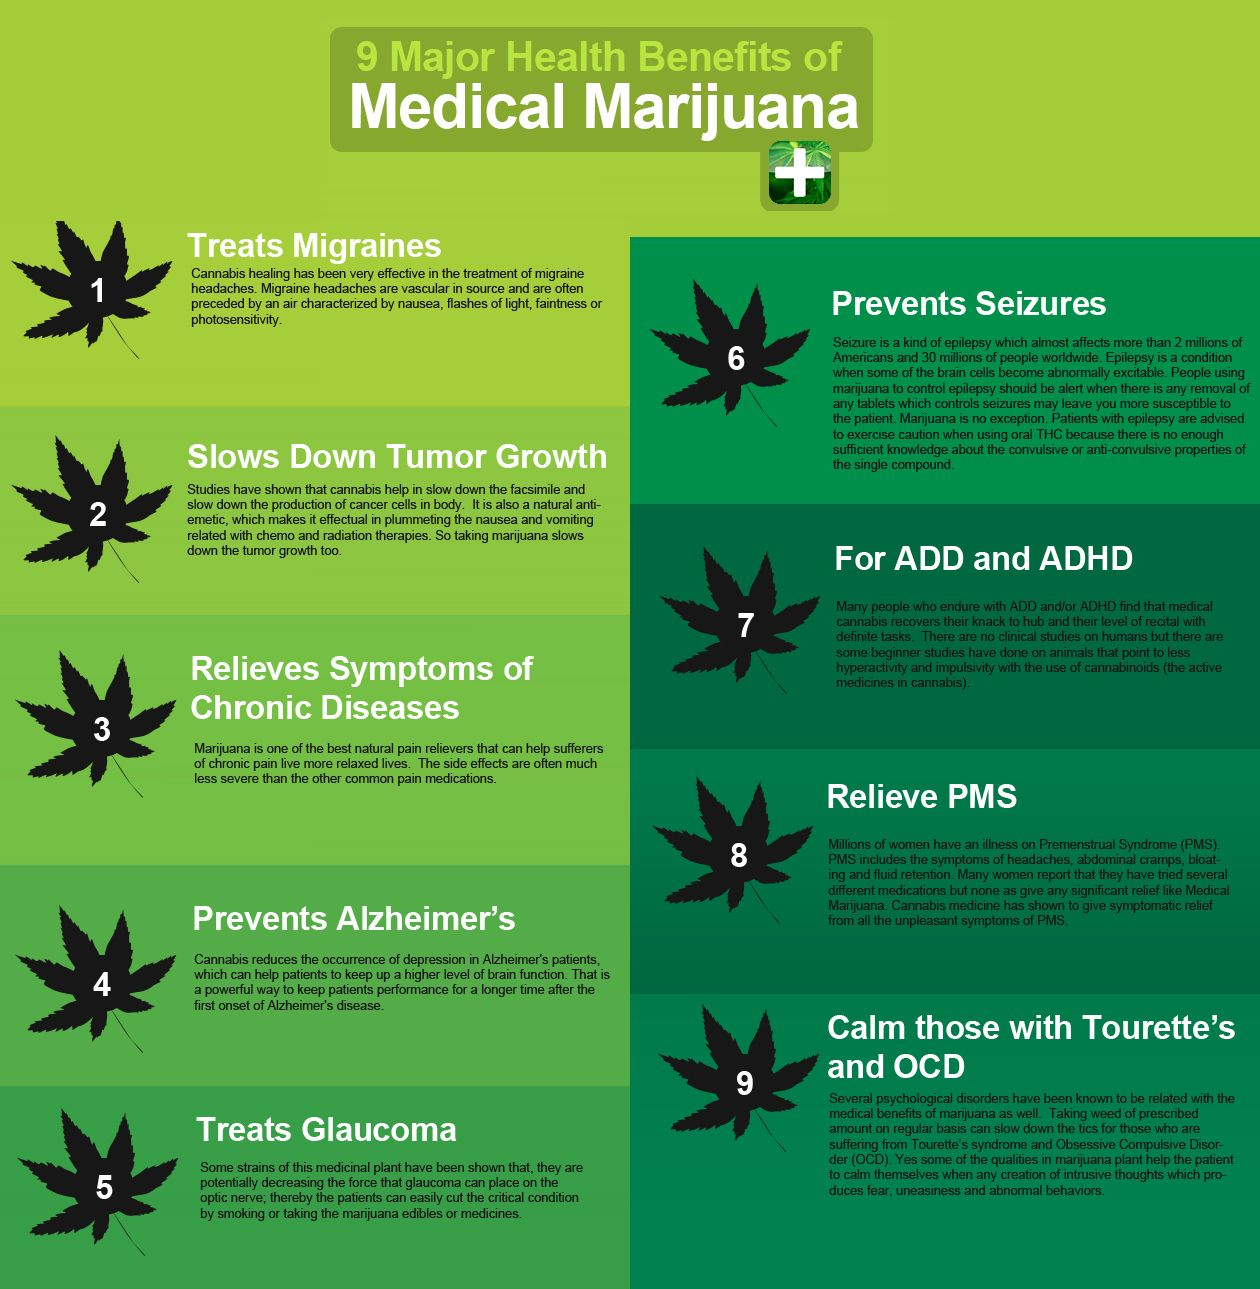 Design Pros And Cons Of Weed how medical marijuana as a nerve relaxation sedative can help to control tonic clonic seizures